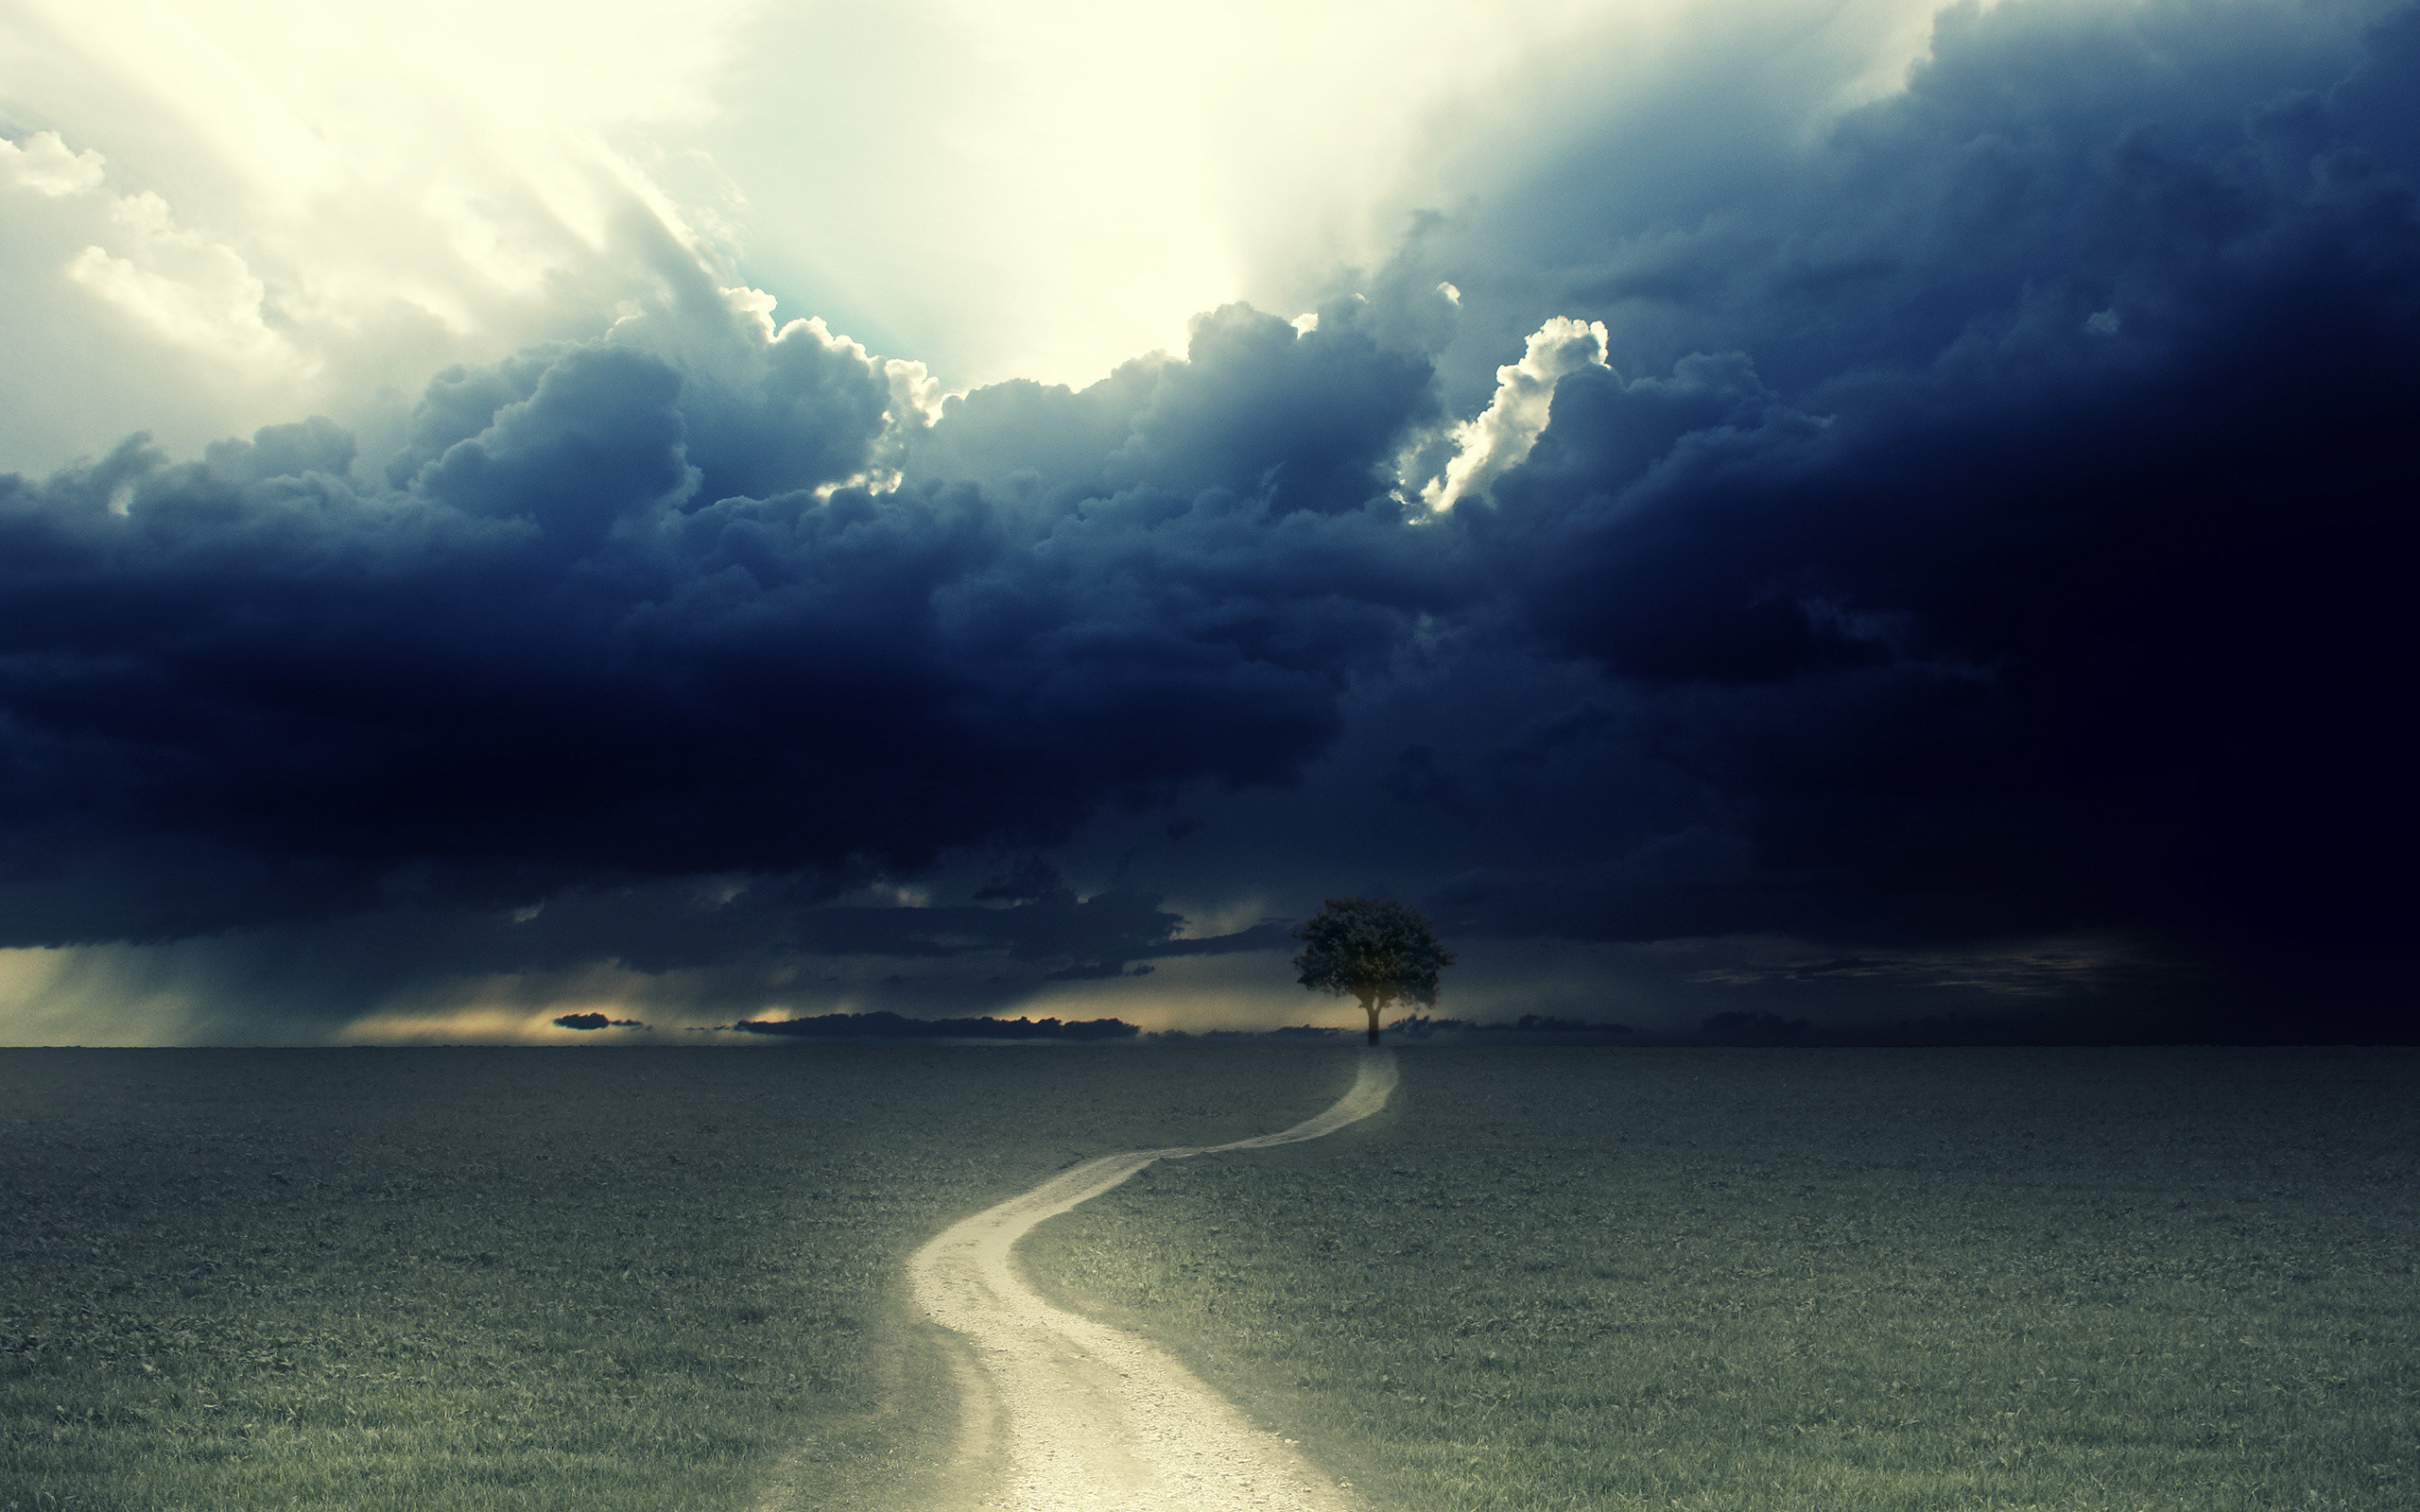 Res: 2560x1600, HD Wallpaper | Background Image ID:105701.  Earth Storm